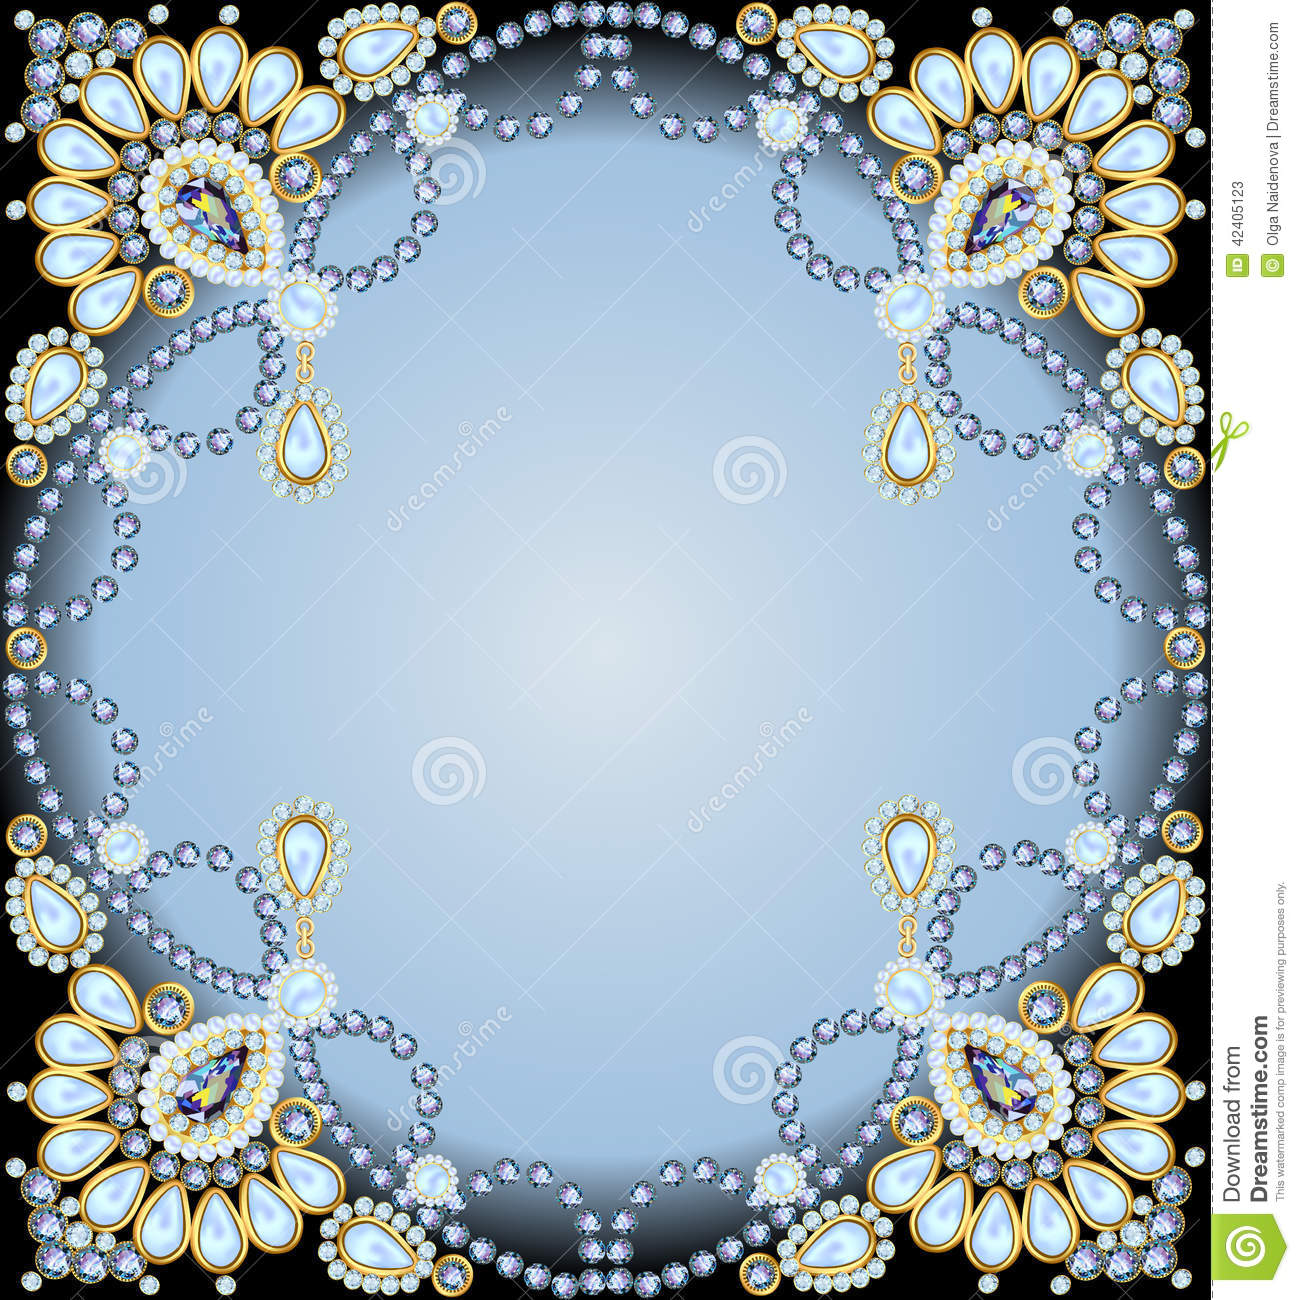 6 Crystal Pearl Photo Picture Frame Diamond Bowknot: Frame With Ornaments Made Of Precious Stones And Pearls